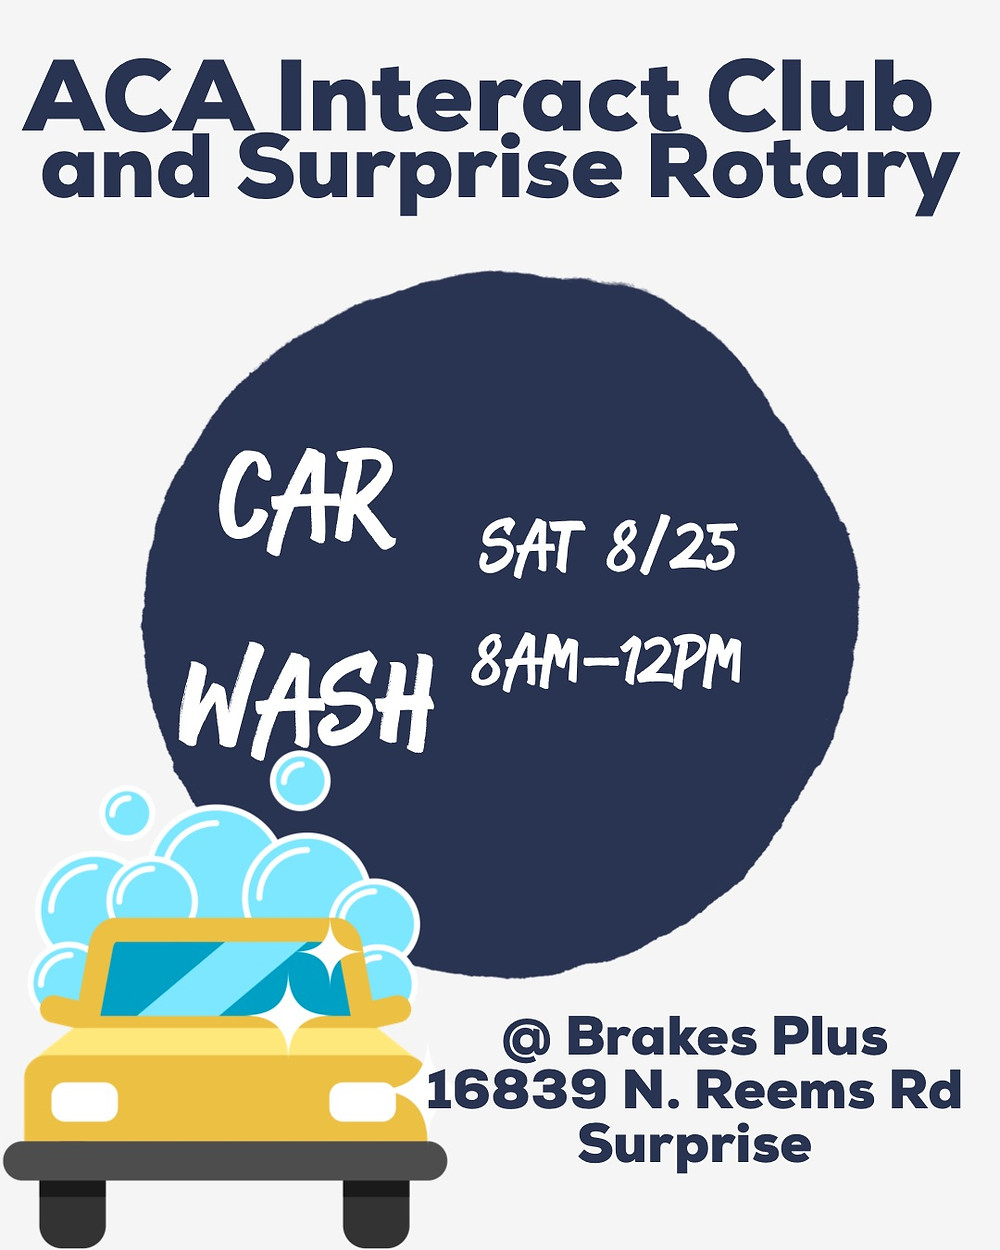 Car Wash Poster: Saturday August 25th from 8am-12pm for the ACA Interact Club and Surprise Rotary